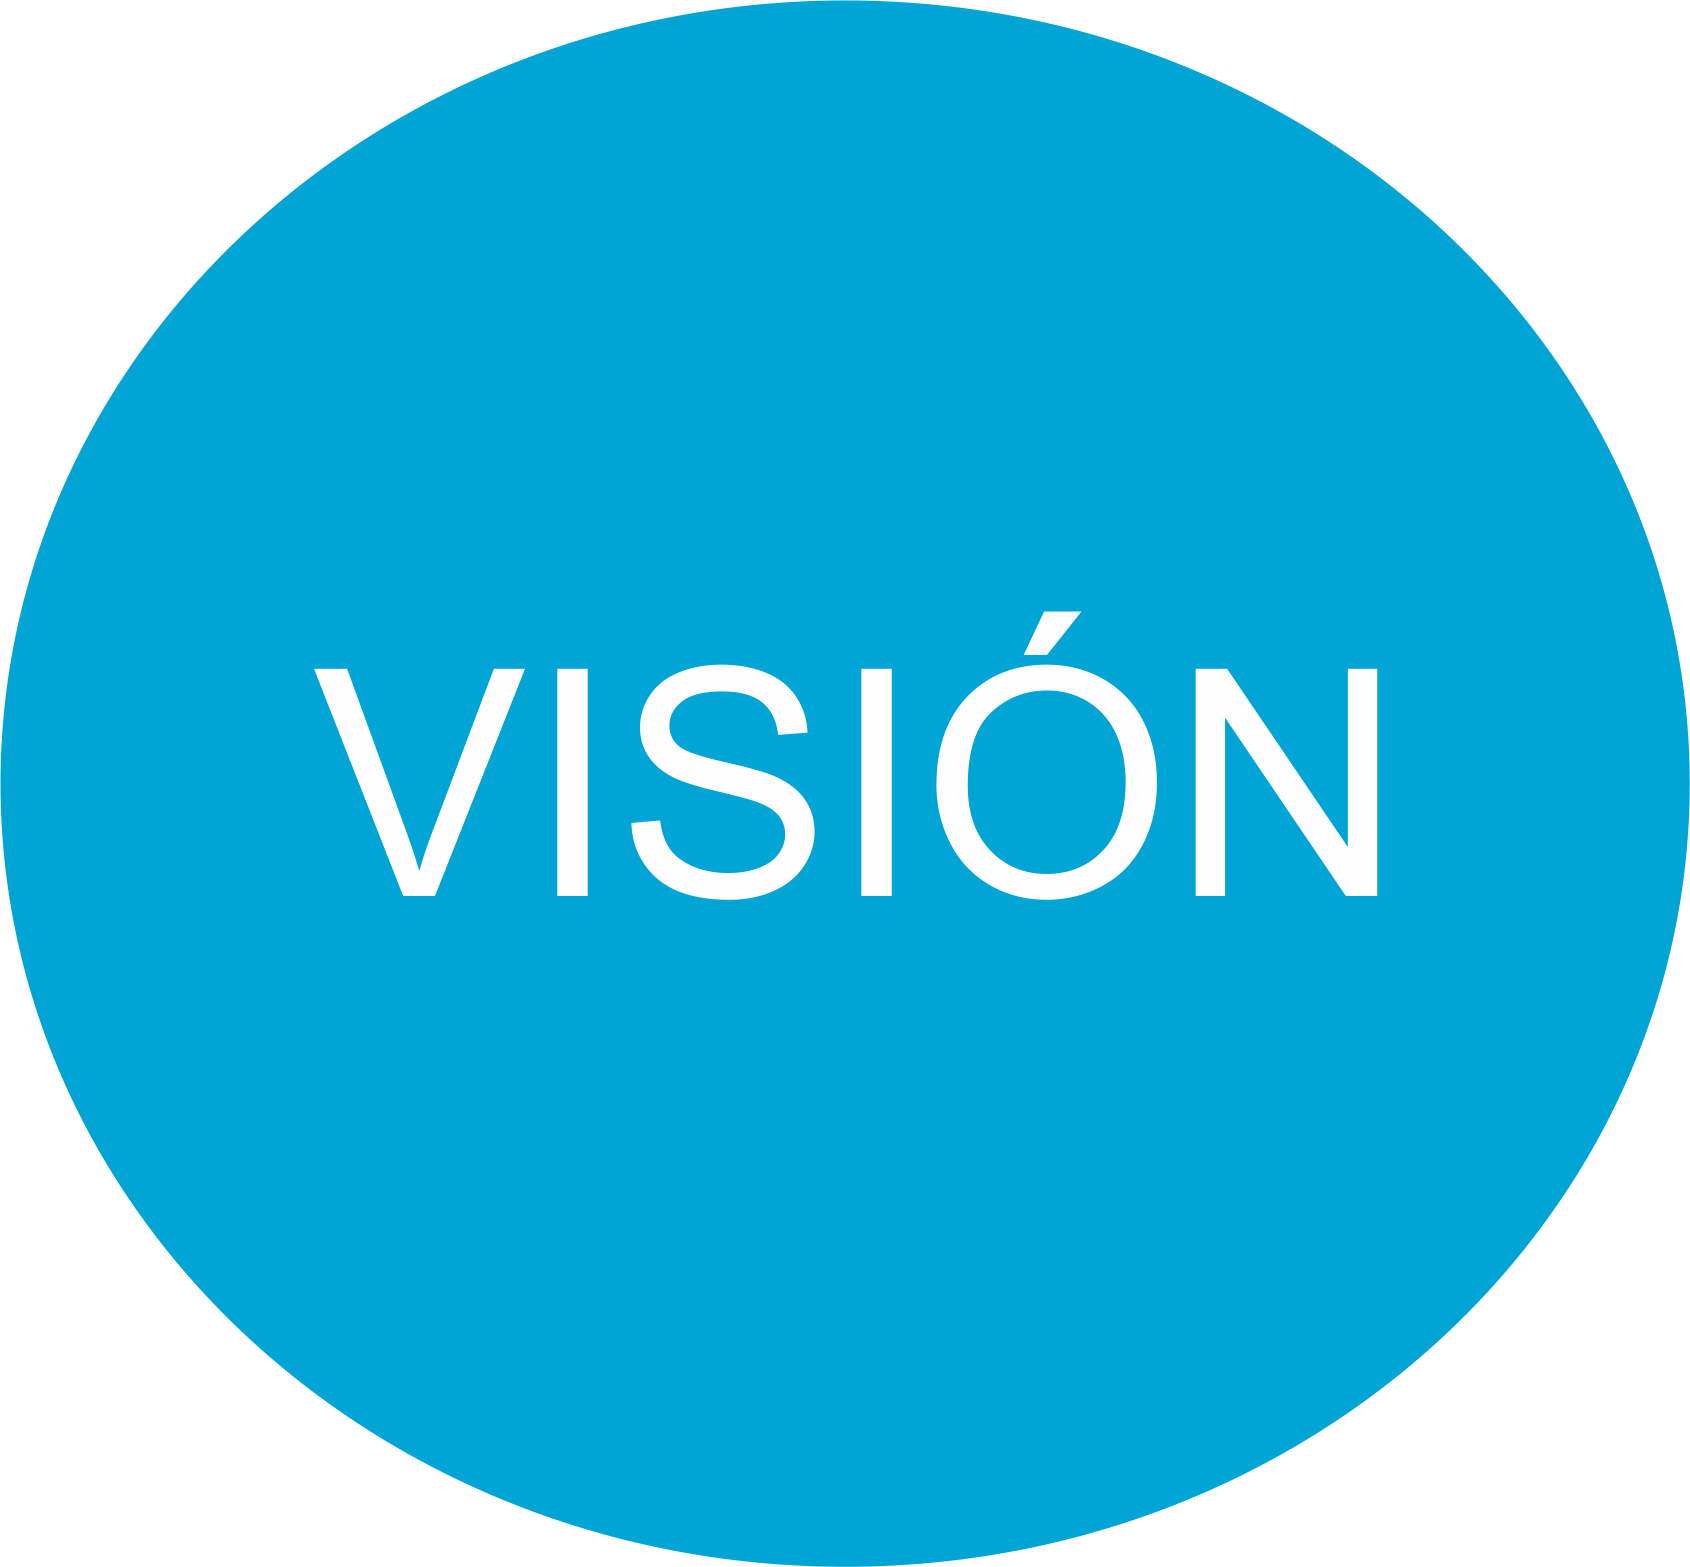 Vision PNG - 3131